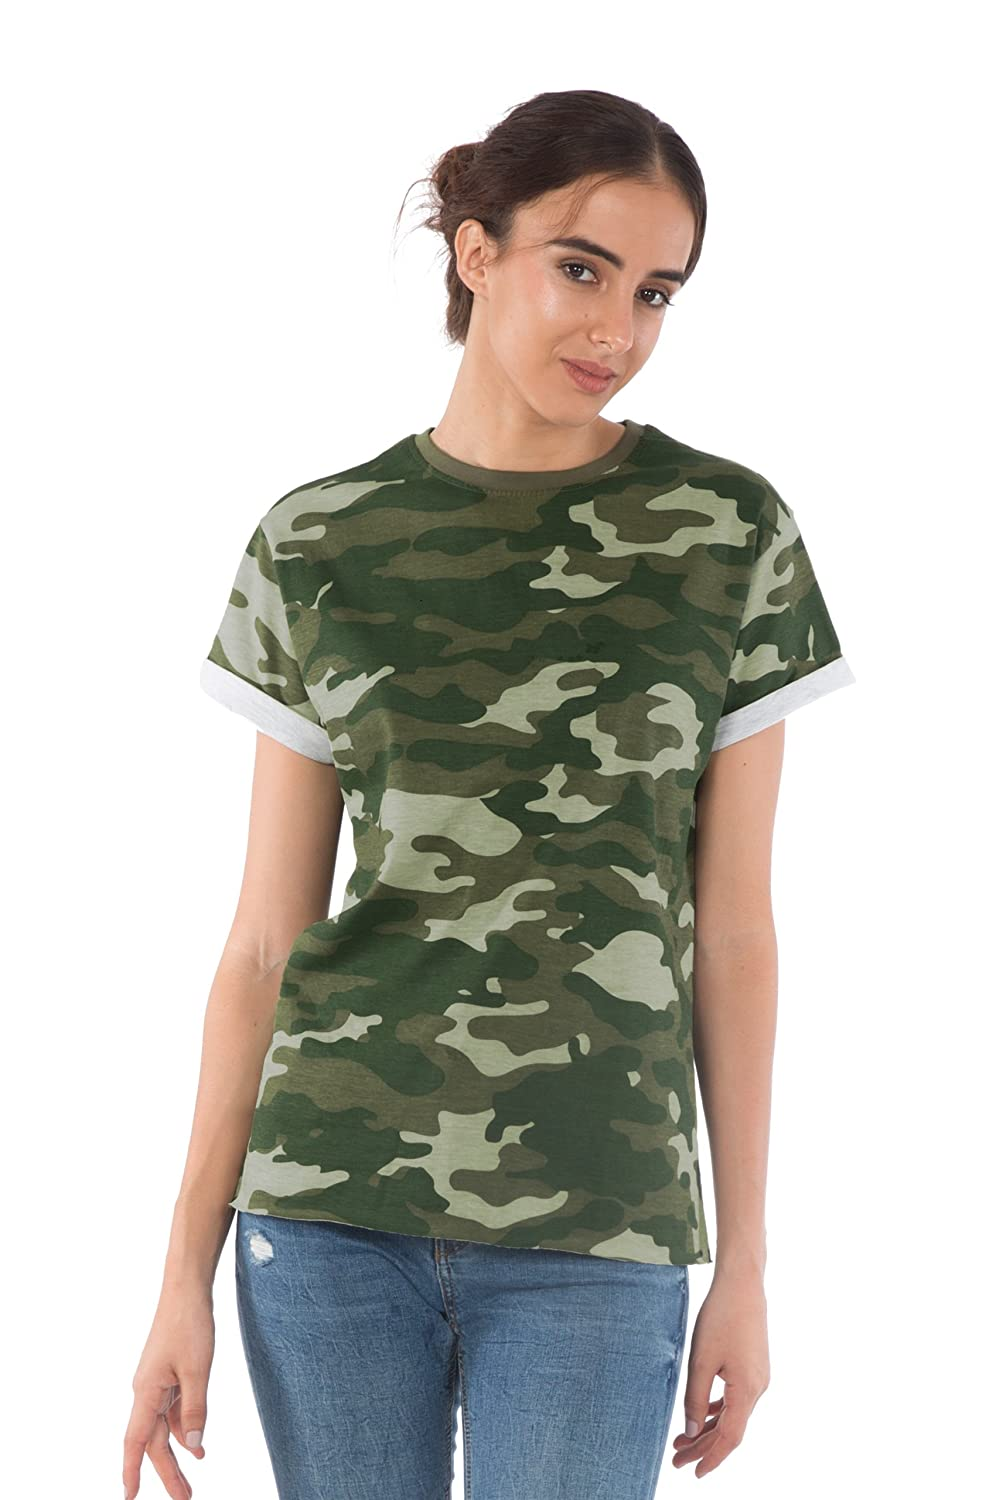 73b7418dfa57 Fabric - Women\'s boyfriend tshirts are made of 100% Cotton, SIngle Jersey  that is pre-washed to impart a softer texture.Airy and perspire-friendly  fabric ...